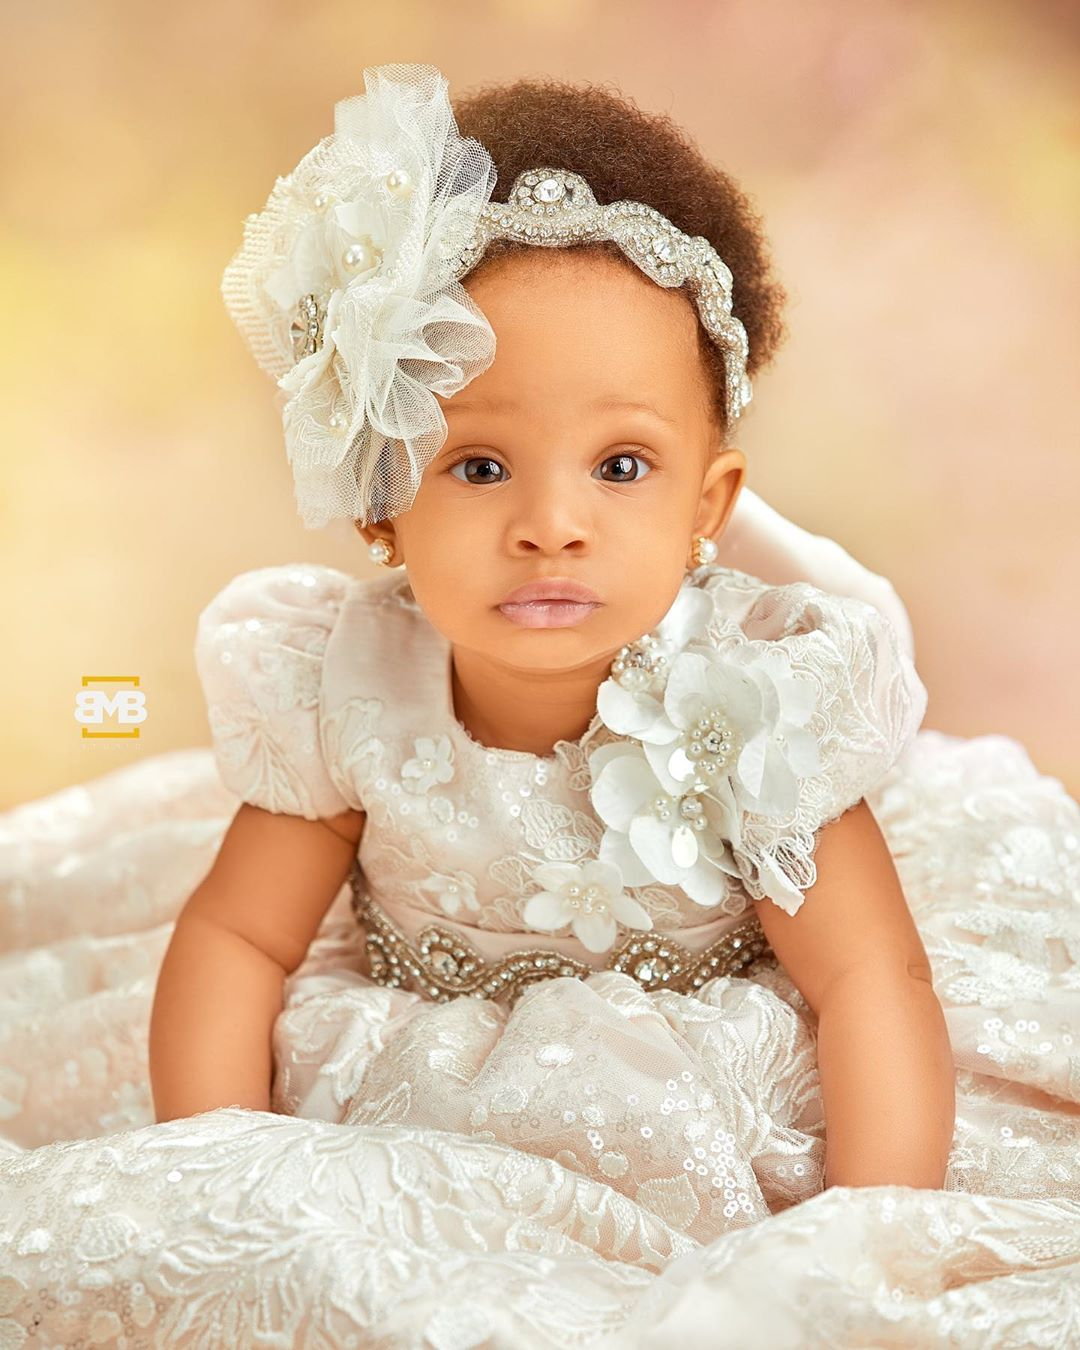 3 Nigerian Celebrity Baby Instagram Accounts to Follow for ...